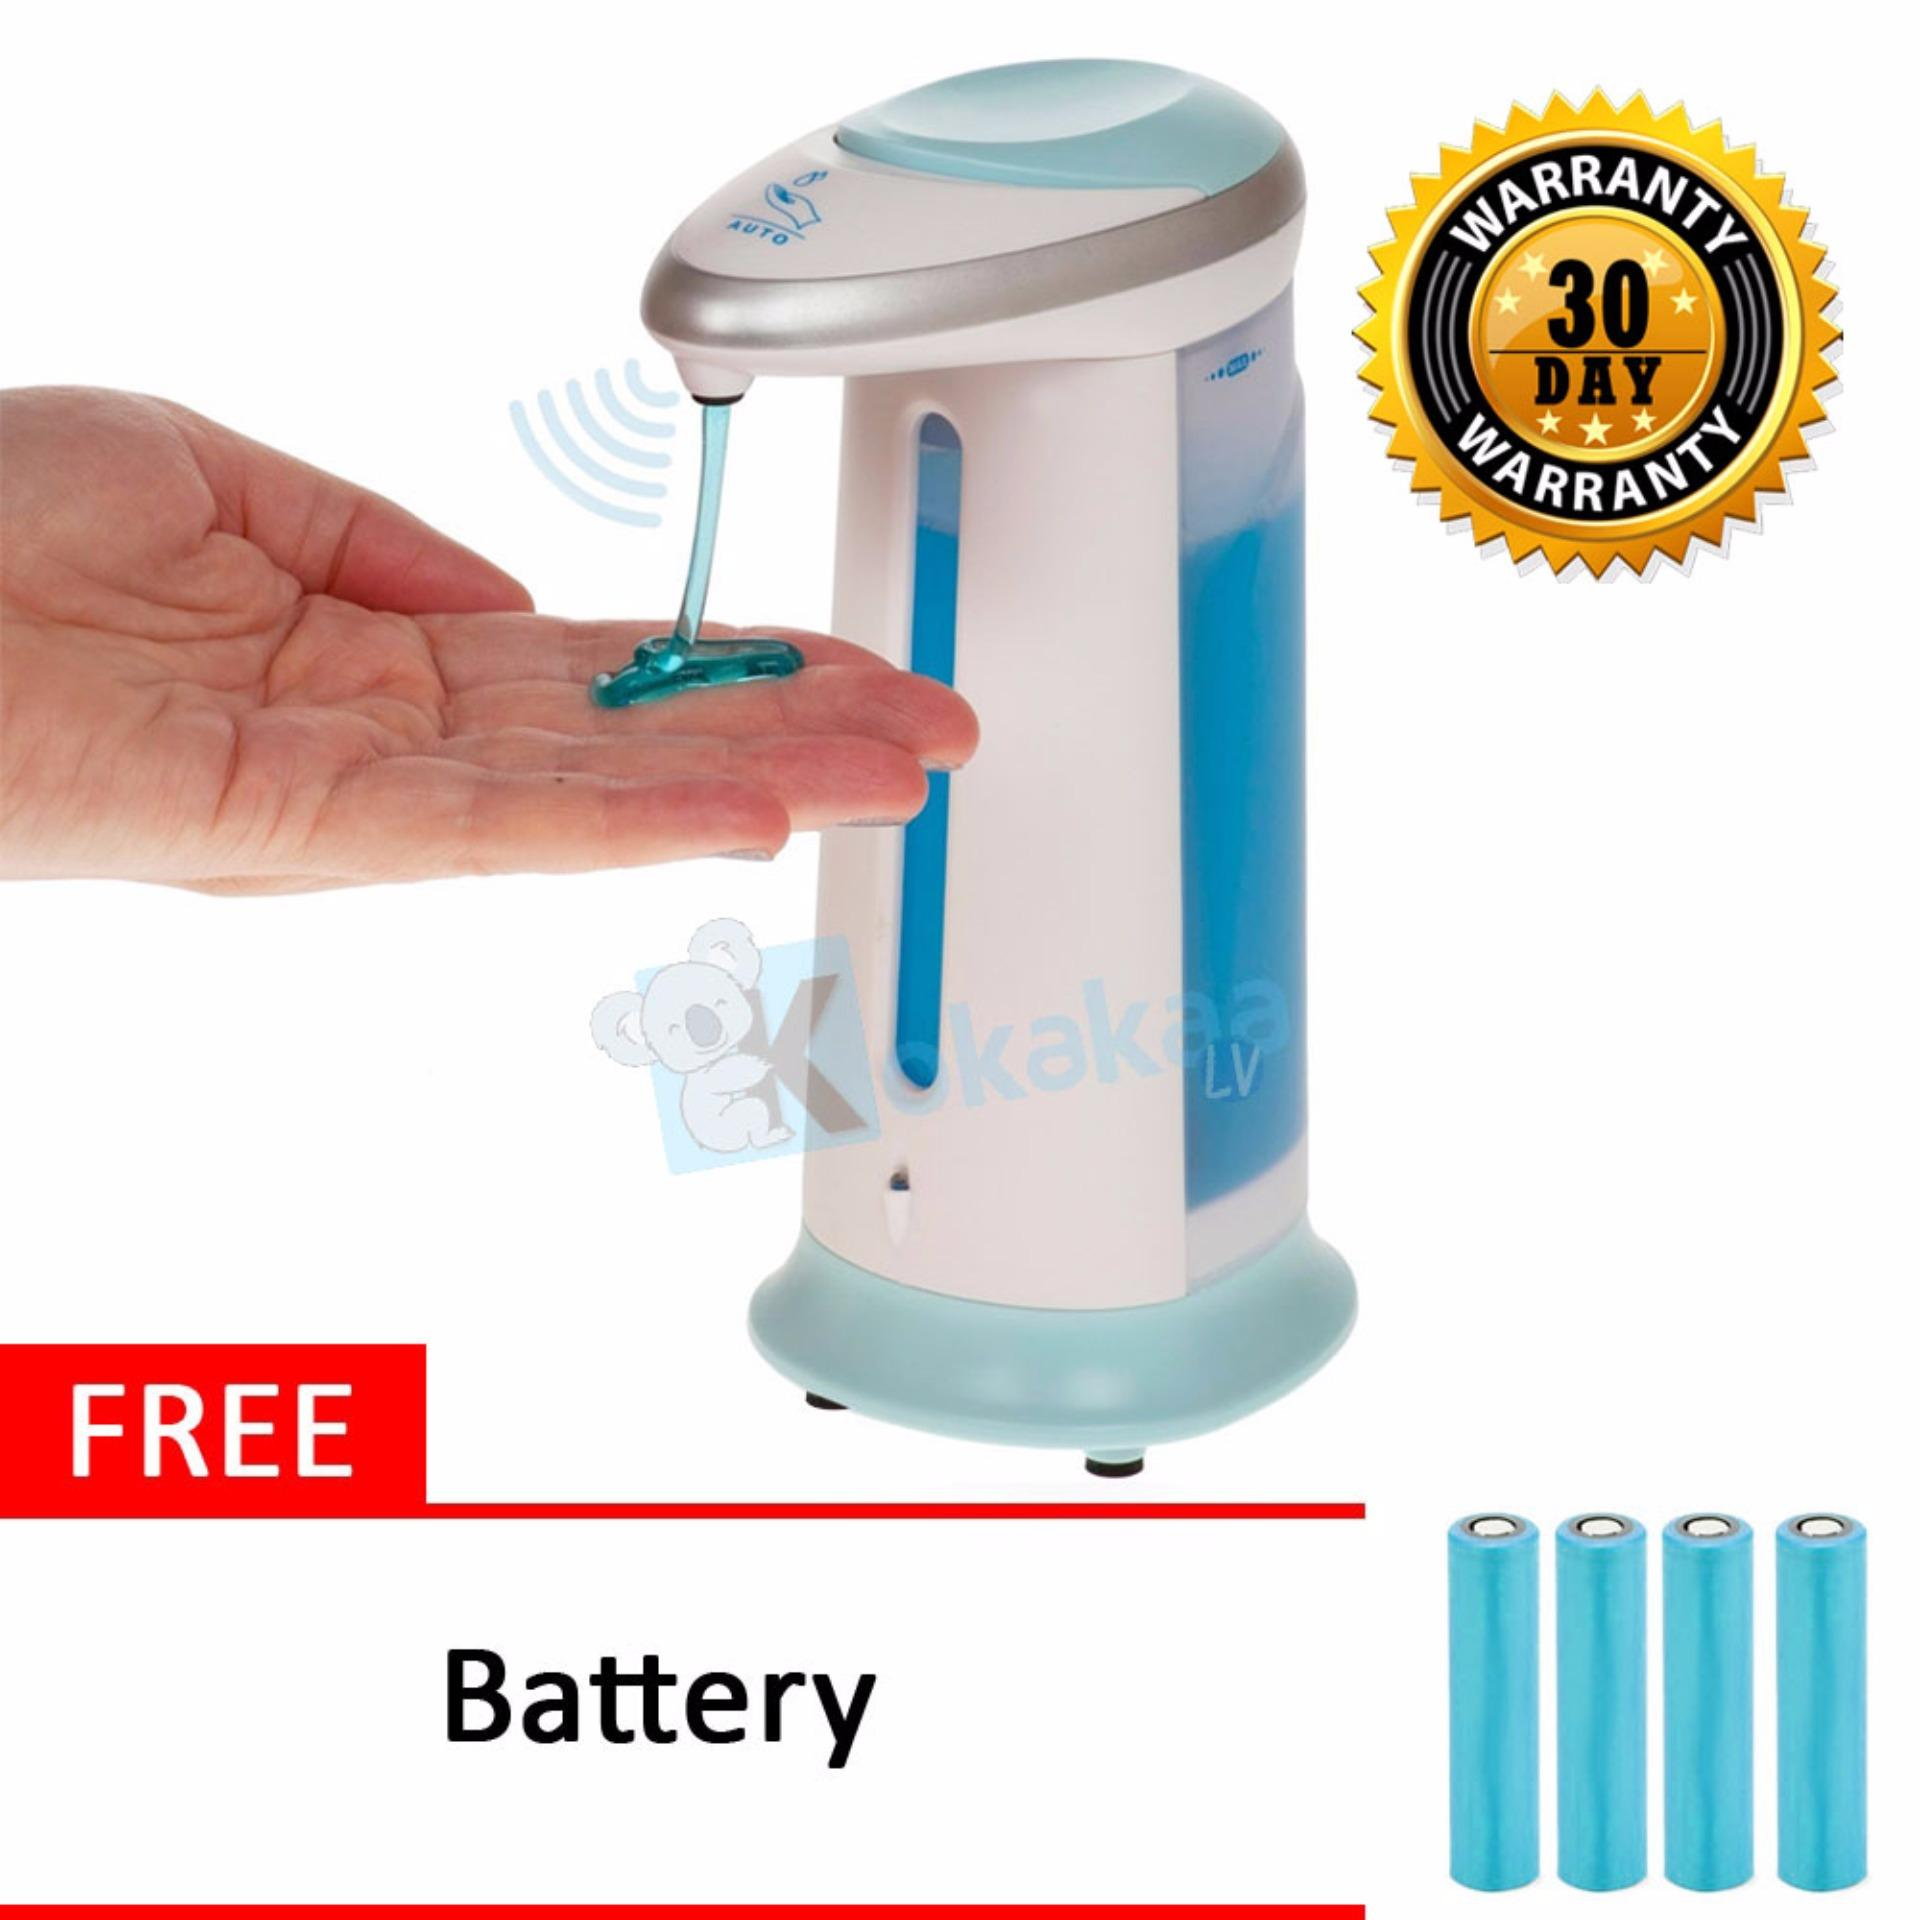 Ecomax Automatic Soap Dispenser Dispenser Sabun Sensor Otomatis Soap Magic Free Battery